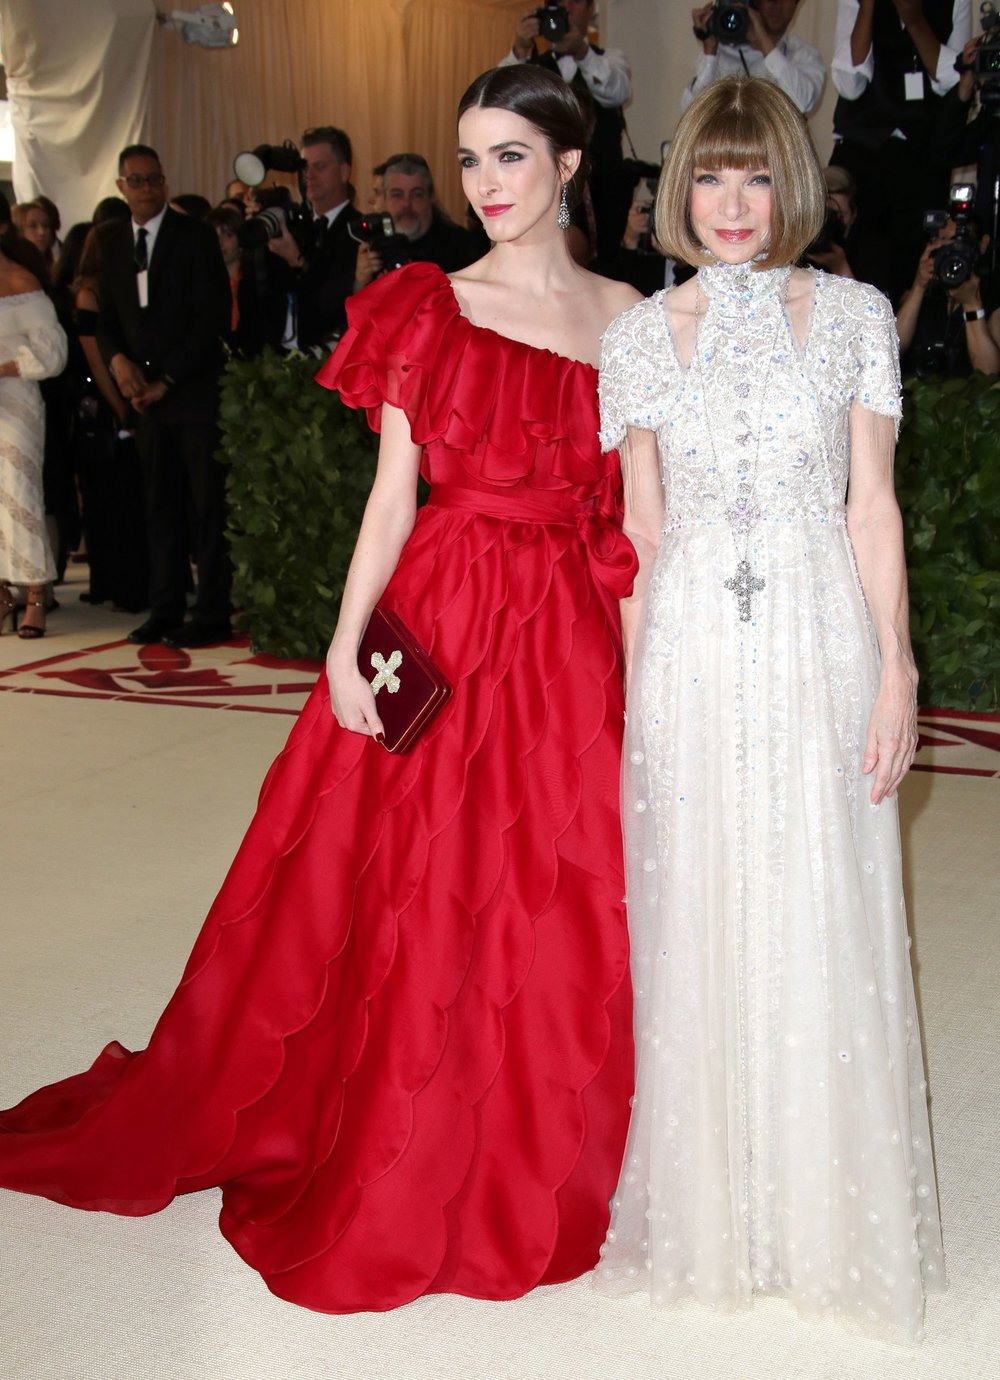 Anna Wintour In custom Chanel and daughter, Bee Shaffer, in Valentino haute couture gown by Pierpaolo Piccioli